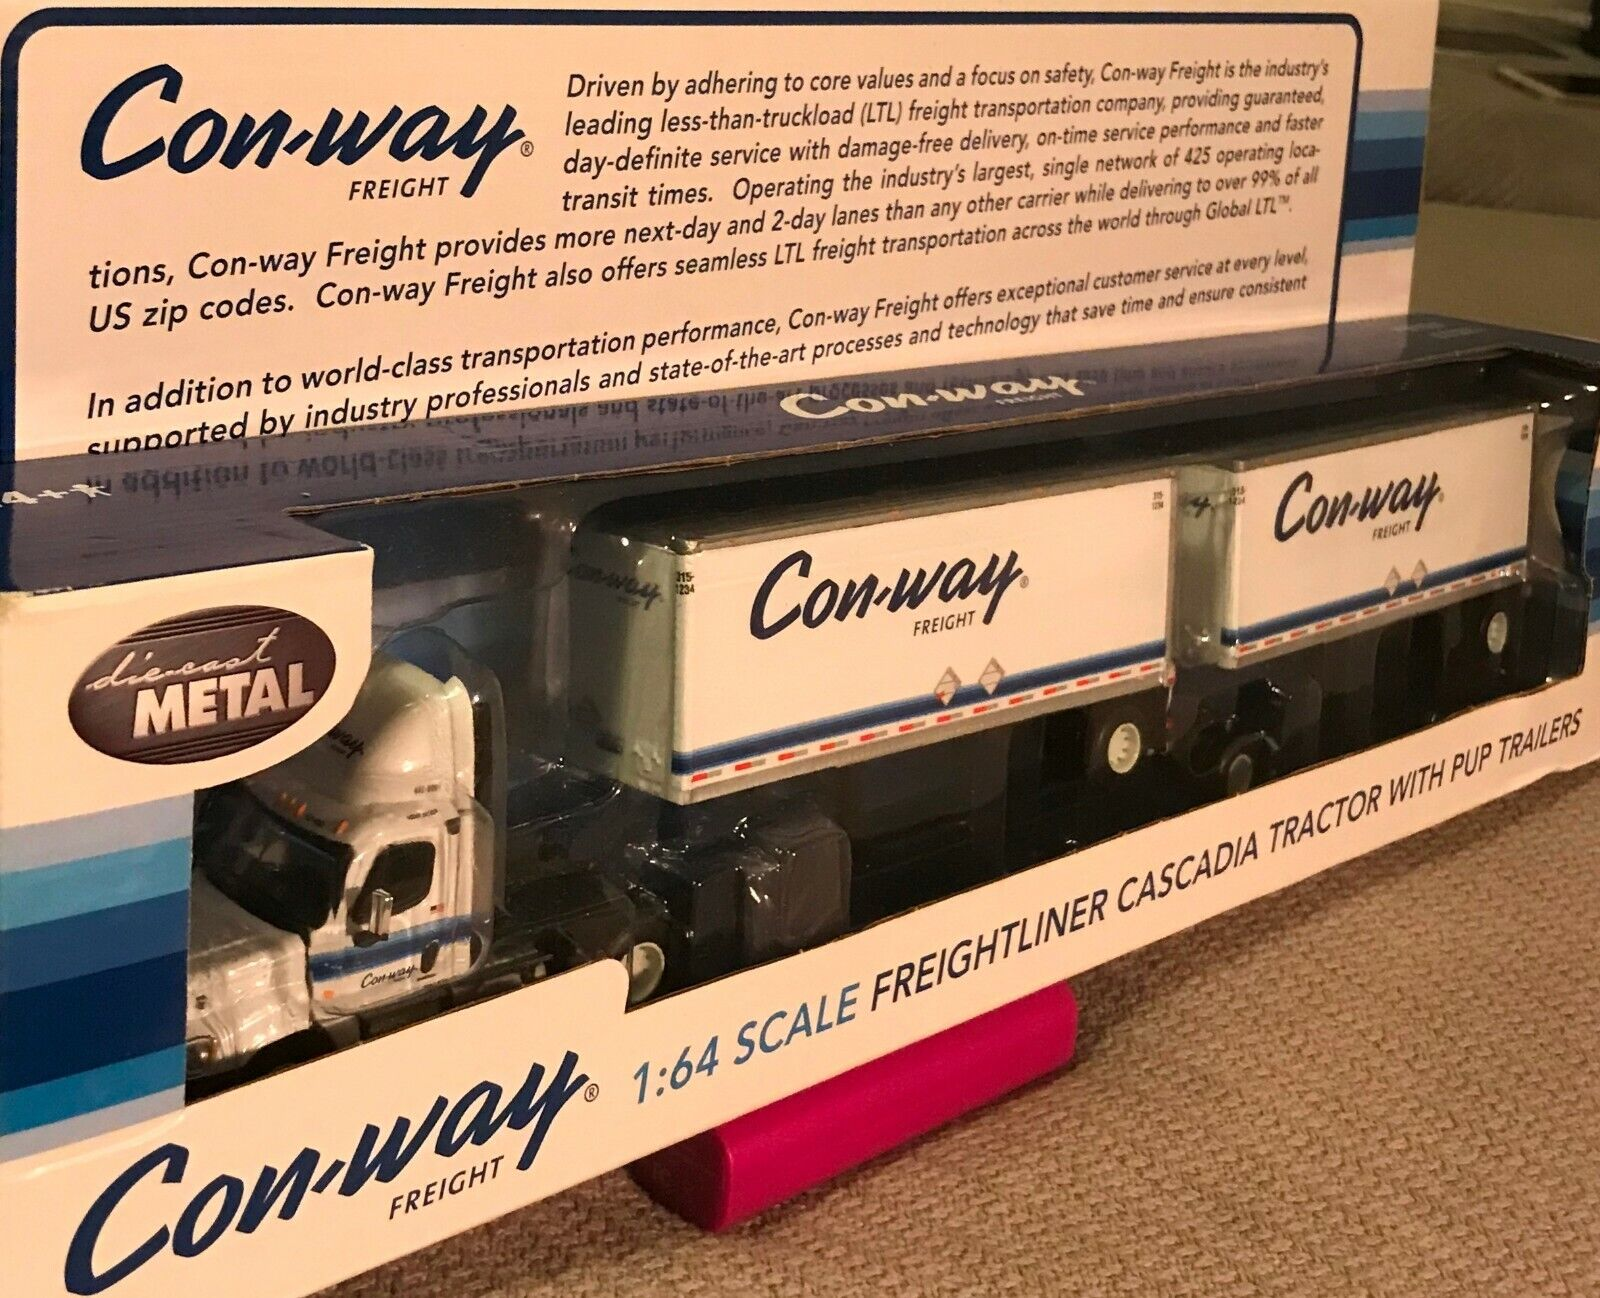 CON-WAY FREIGHT 1:64 SCALE FREIGHTLINER CASCADIA TRACTOR WITH PUP TRAILERS